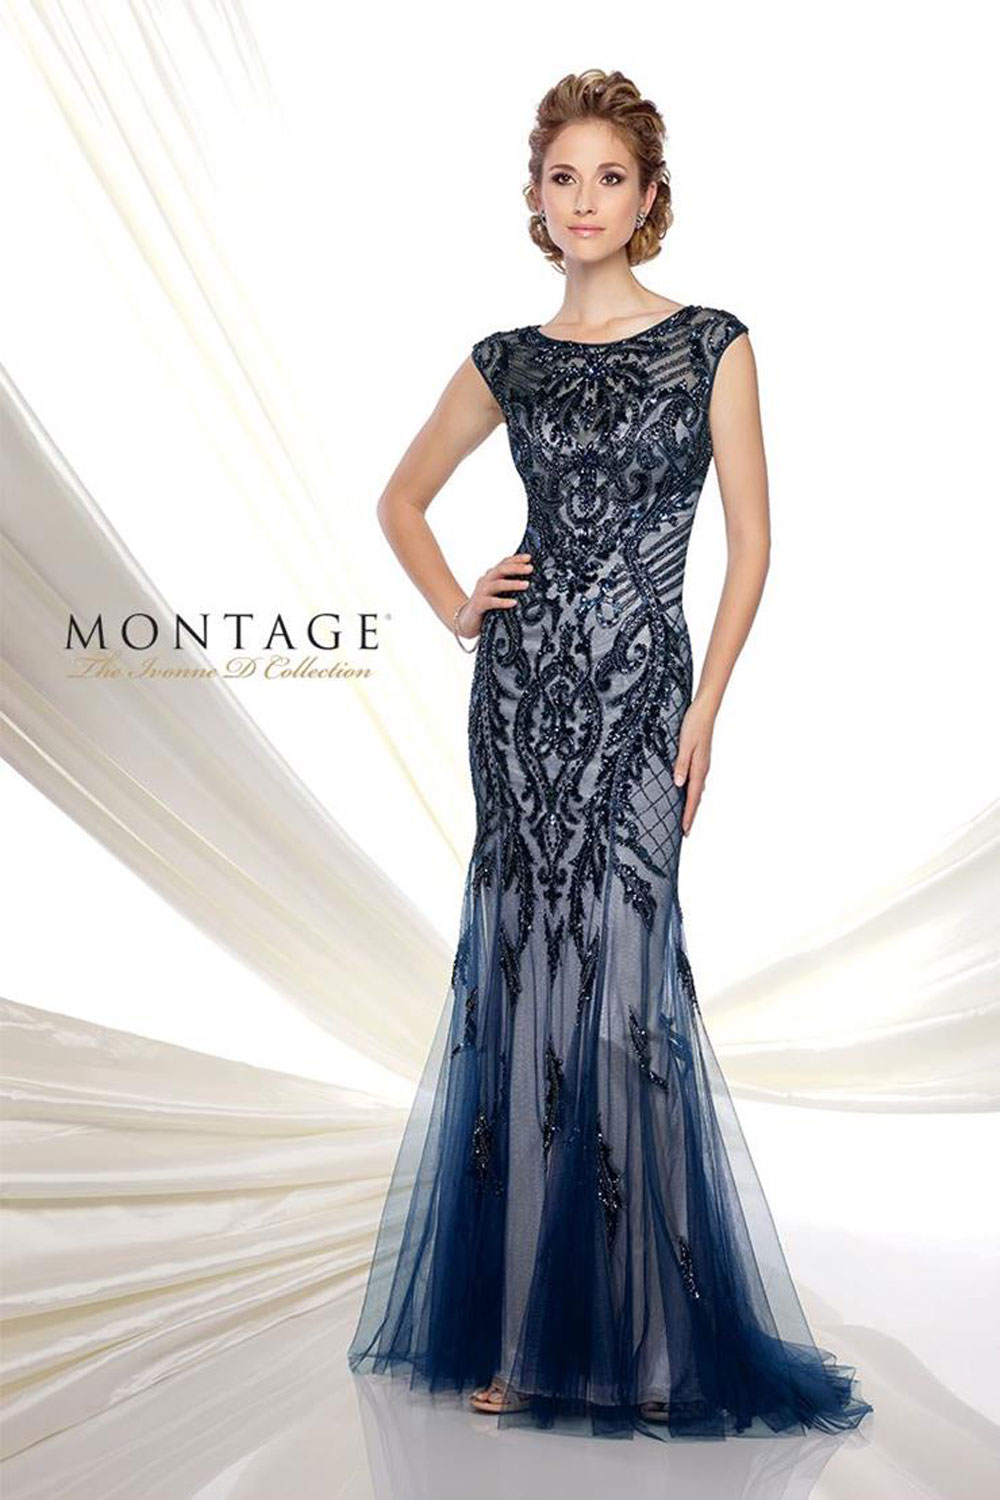 Evening gown with three-quarter sleeves & bateau neckline.